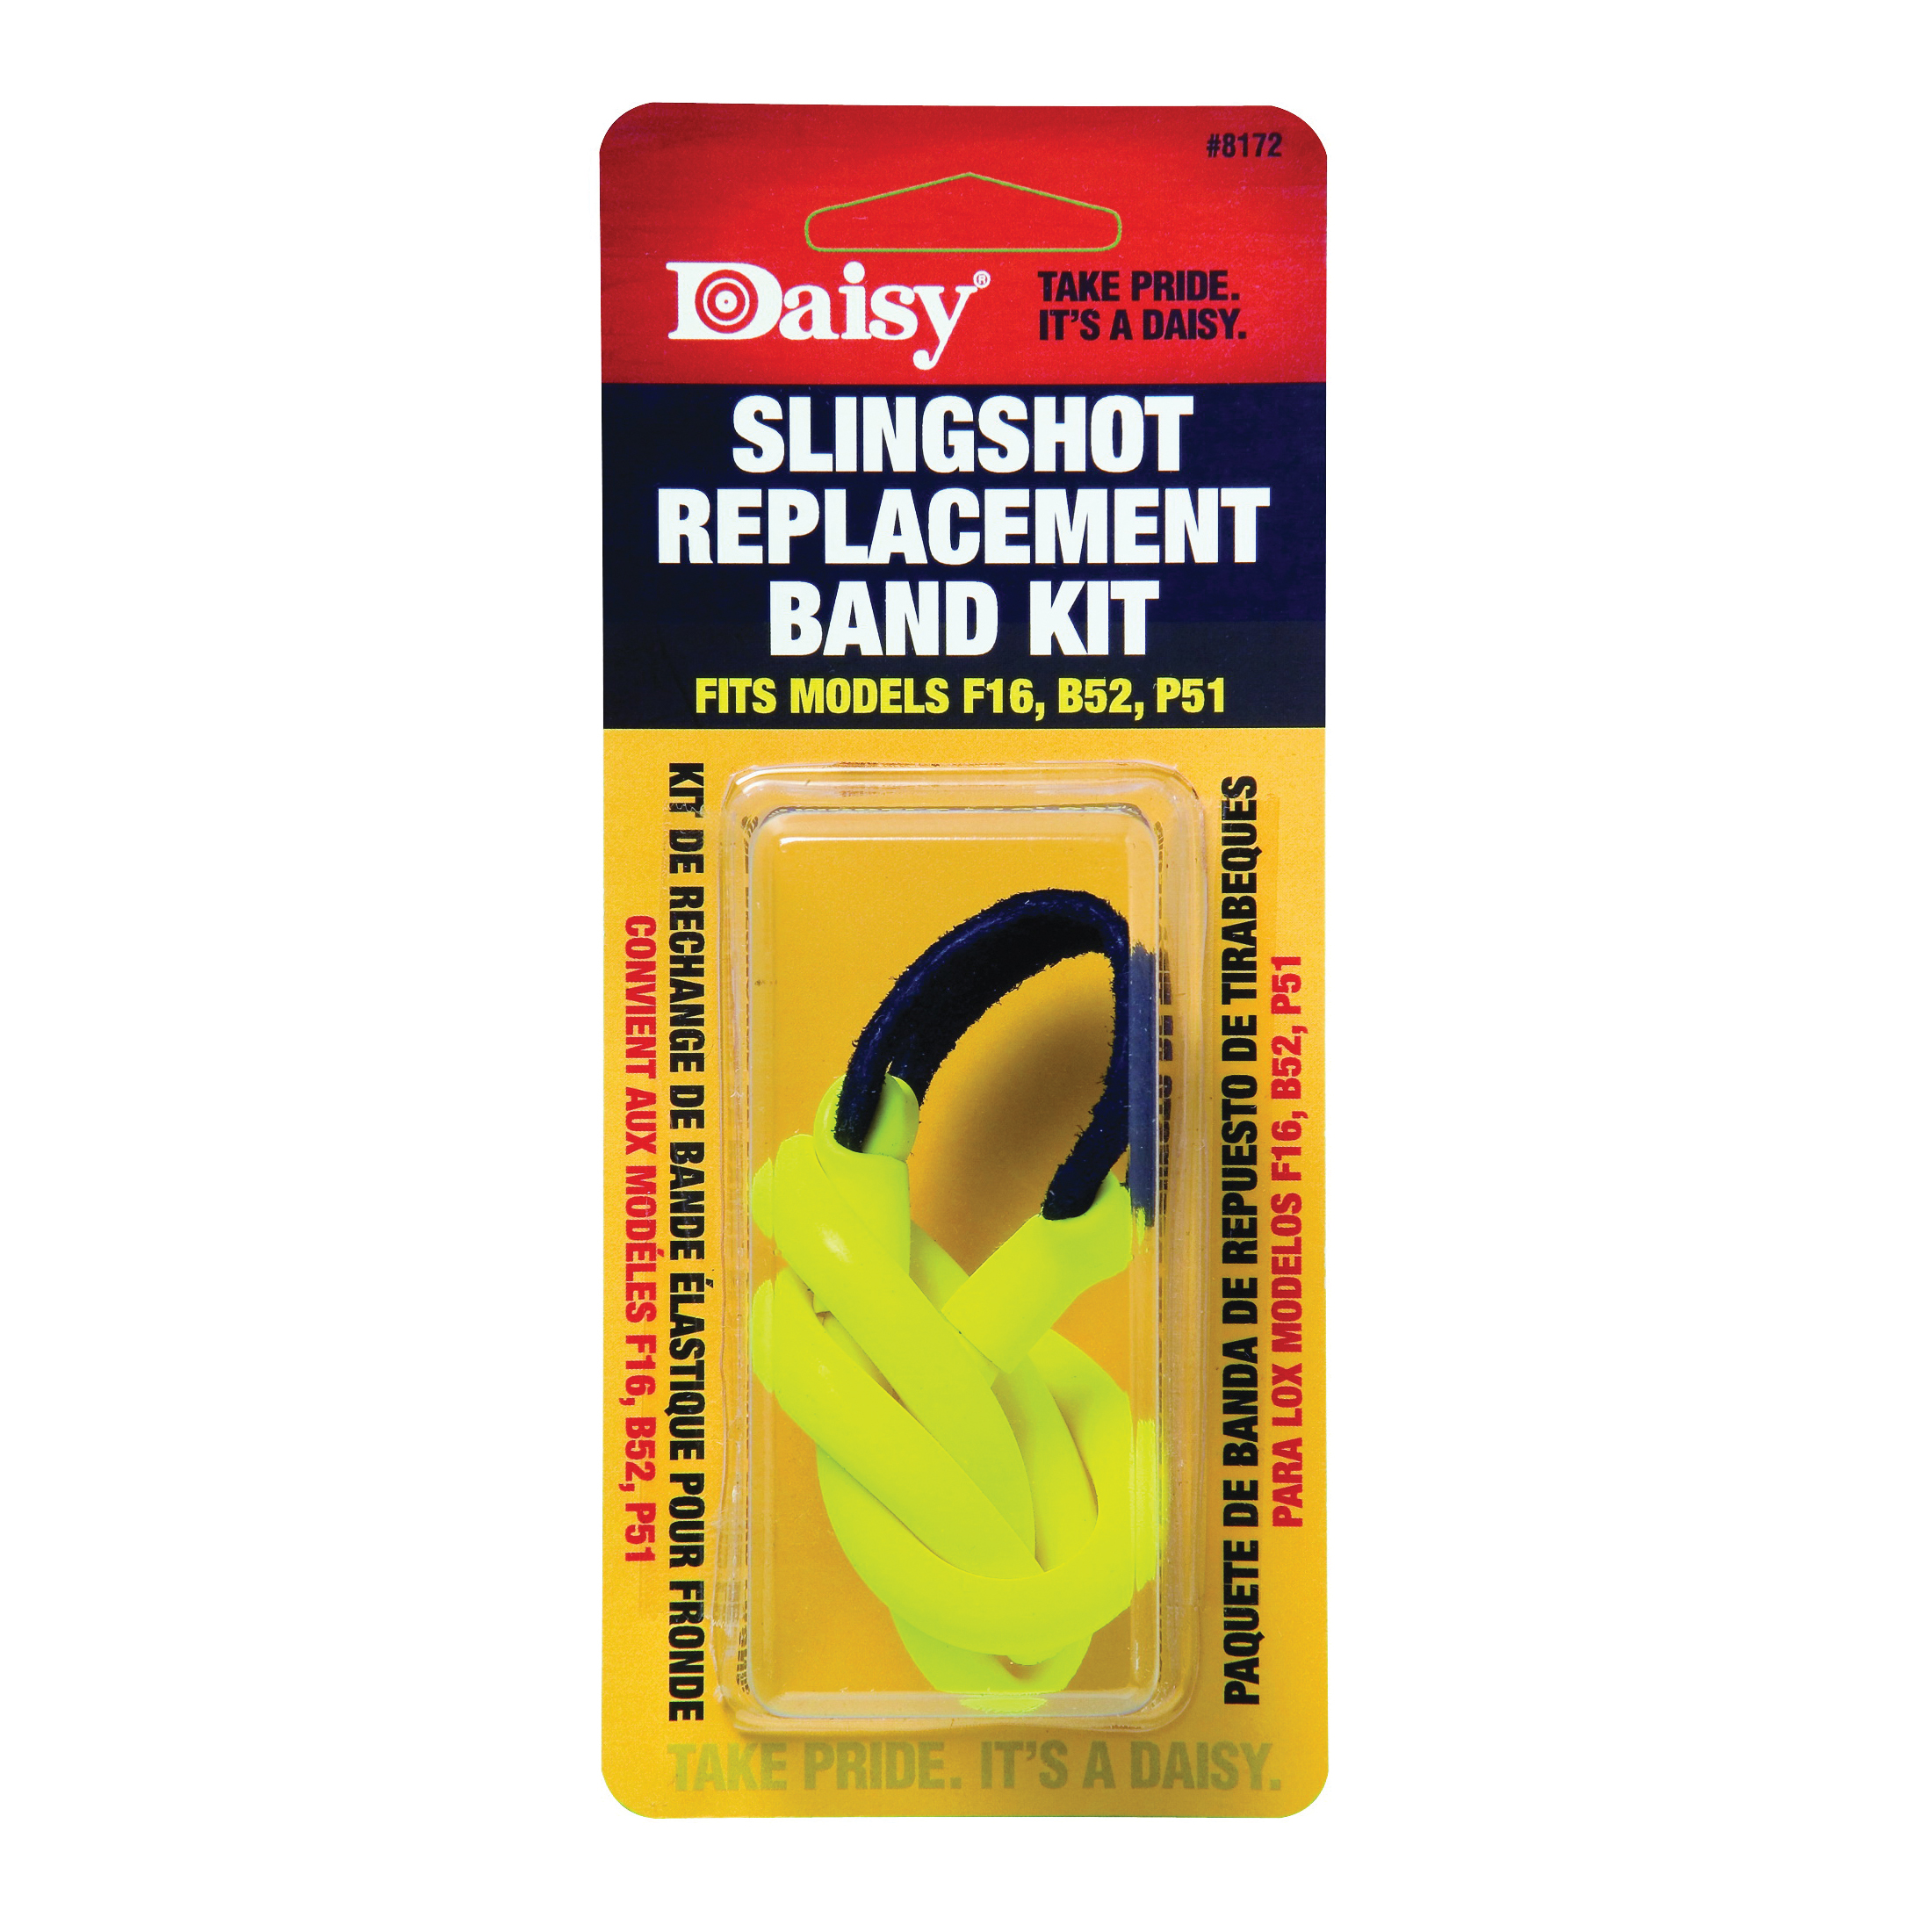 Picture of Daisy 8172 Slingshot Band, For: F16, B52 and P51 Model Slingshot